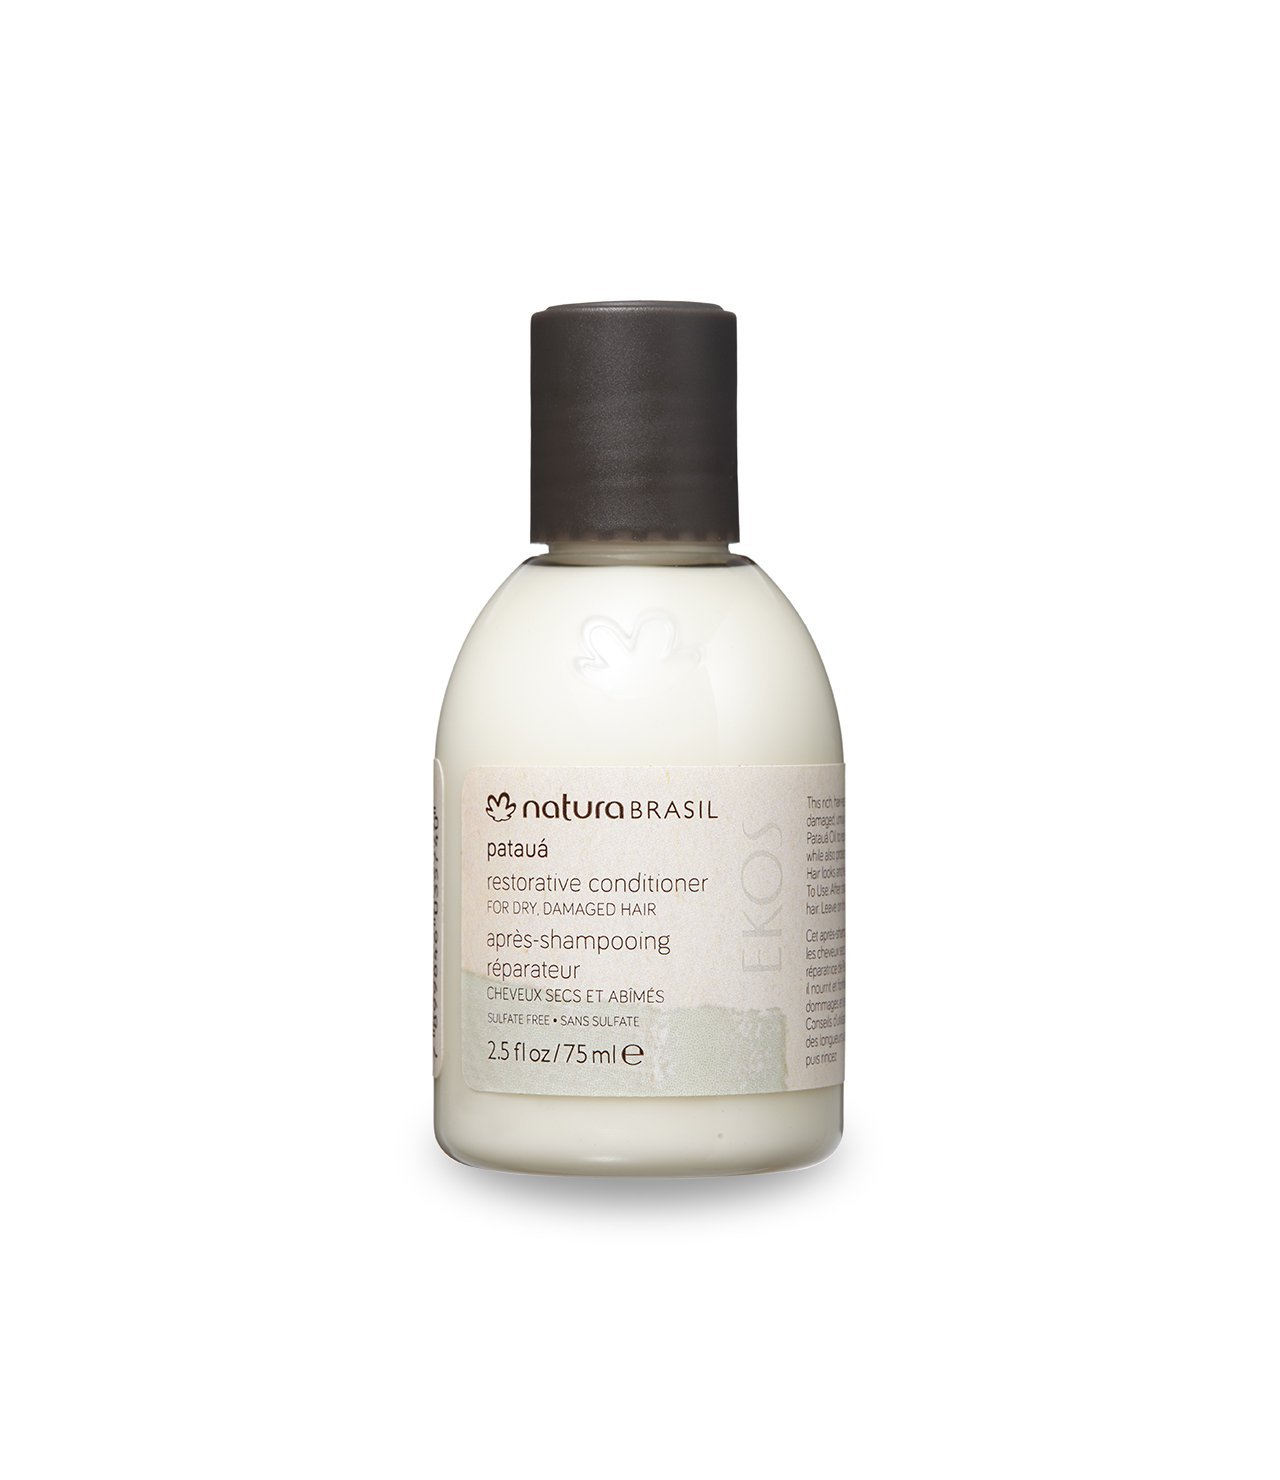 Pataua Restorative Conditioner_mobile - 2.5fl.oz / 75ml